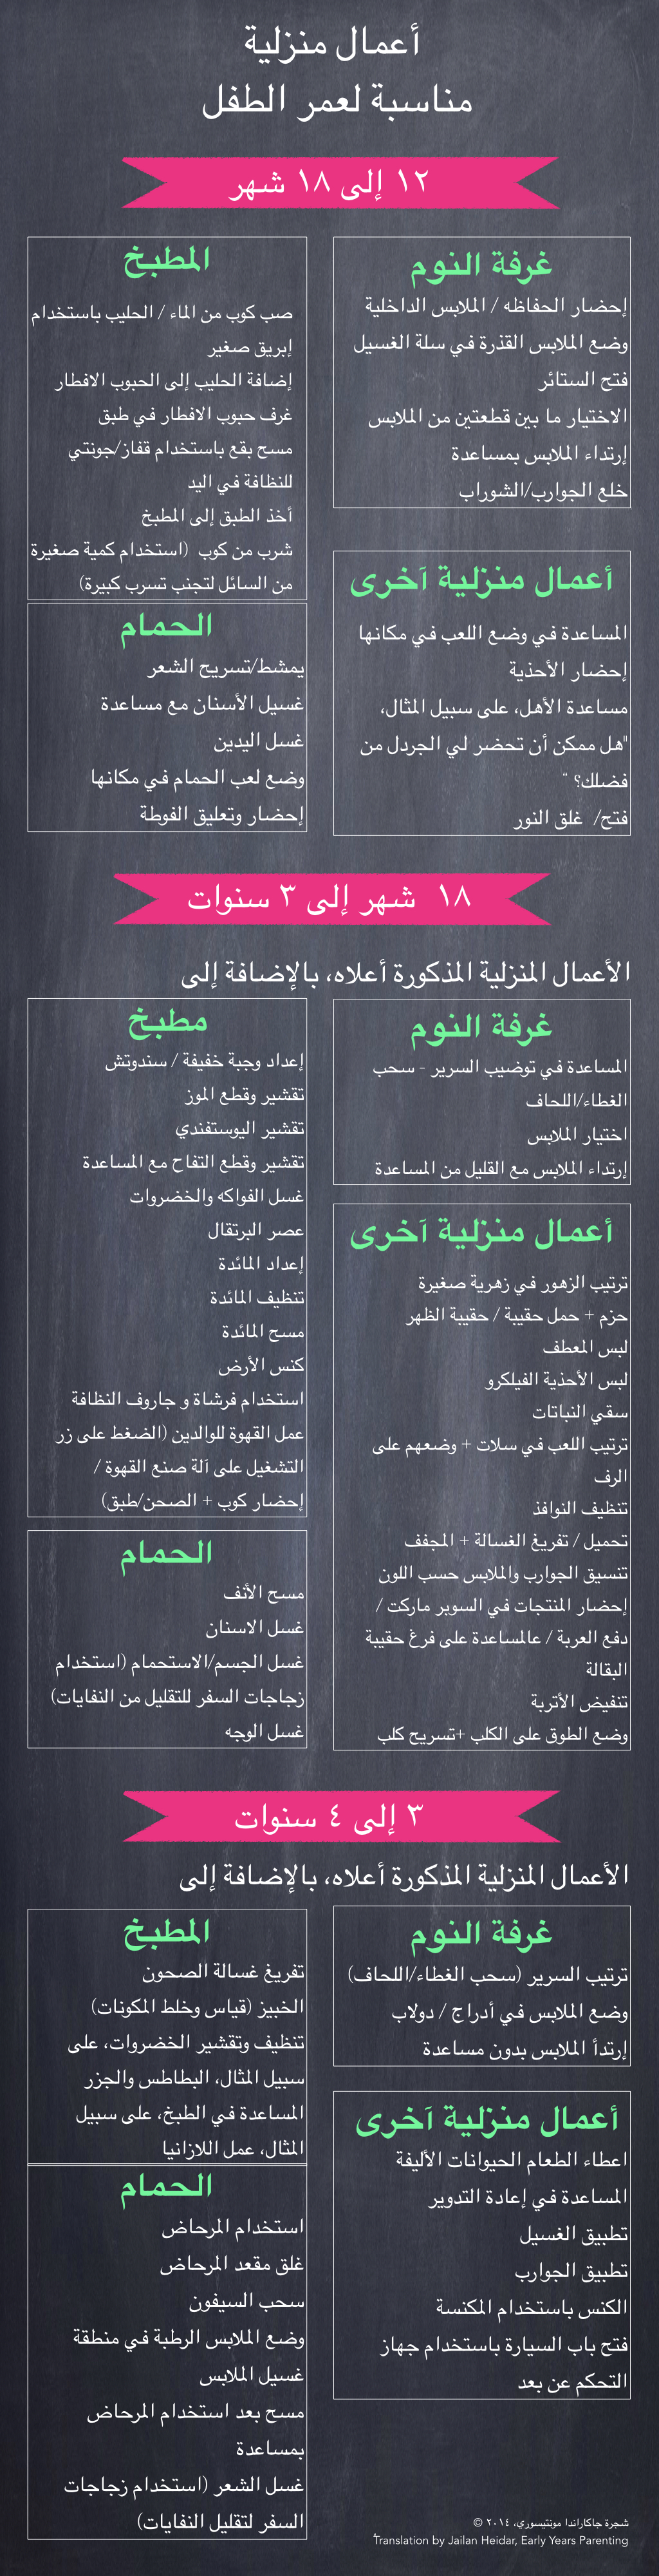 chores infographic - arabic